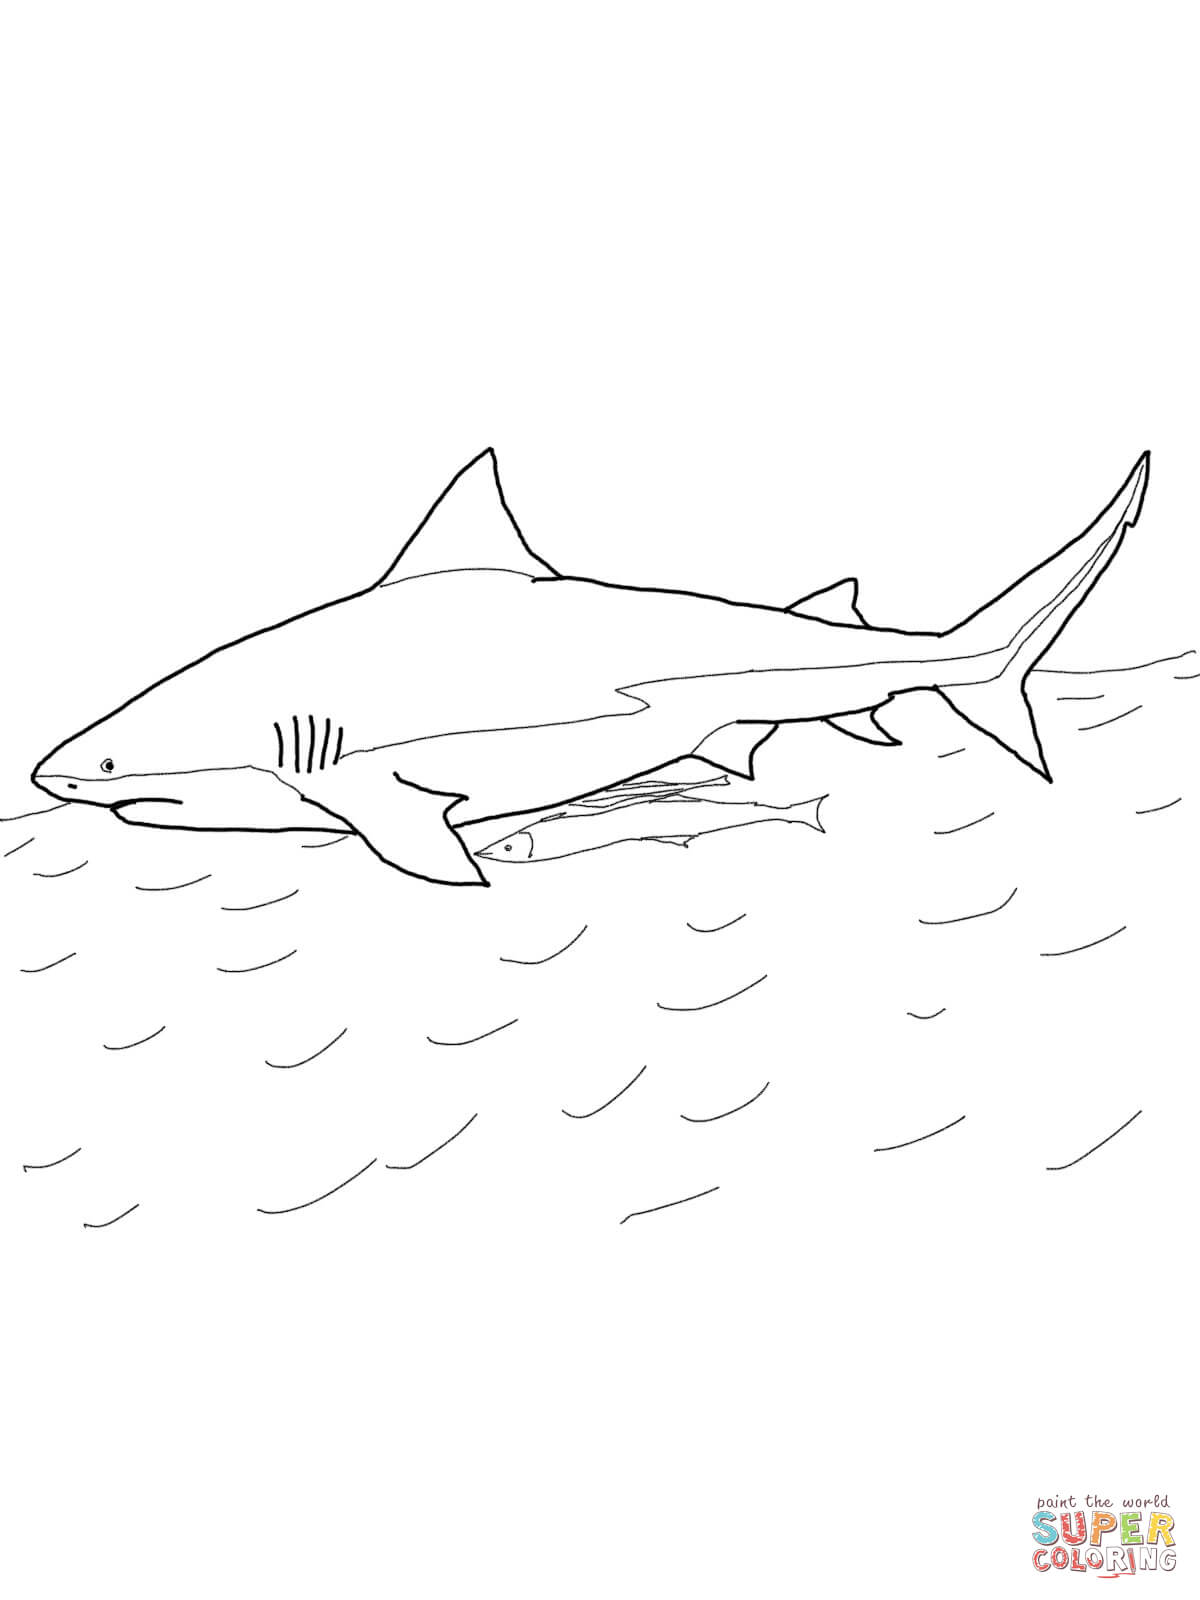 Whale Shark Drawing At Getdrawings Com Free For Personal Use Whale